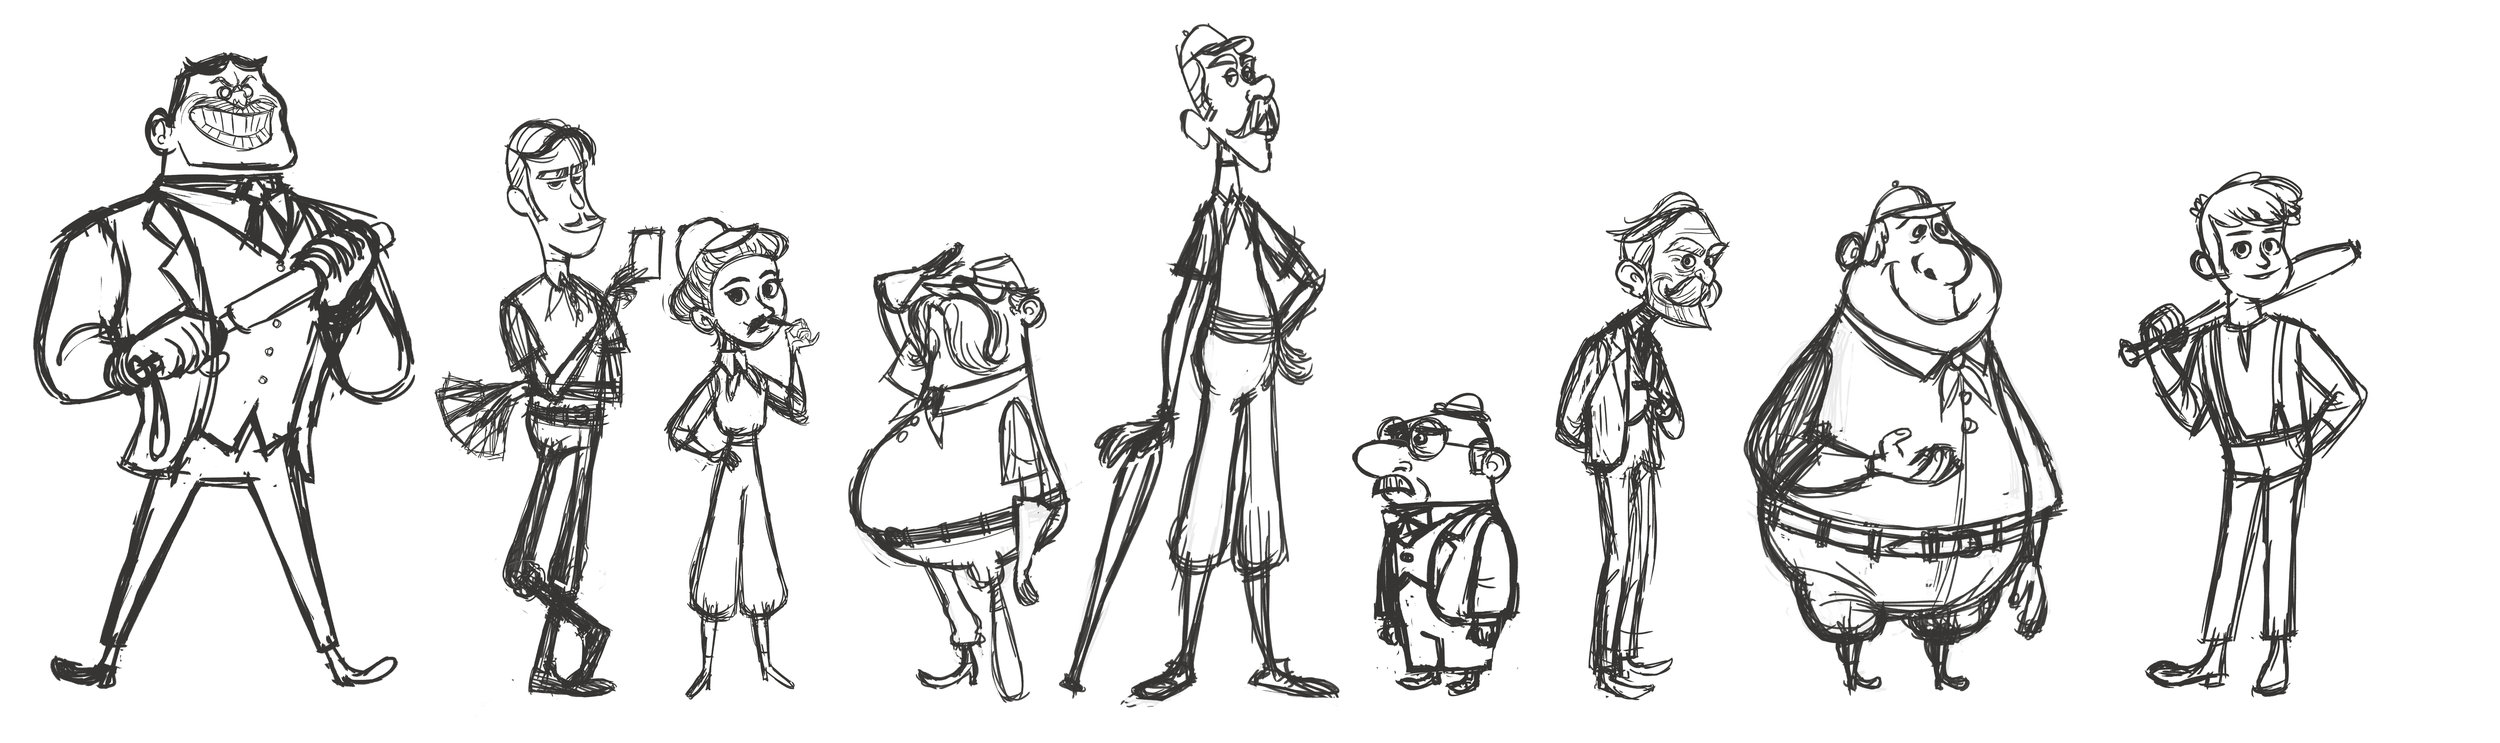 The Cast sketches by Brigette Barrager